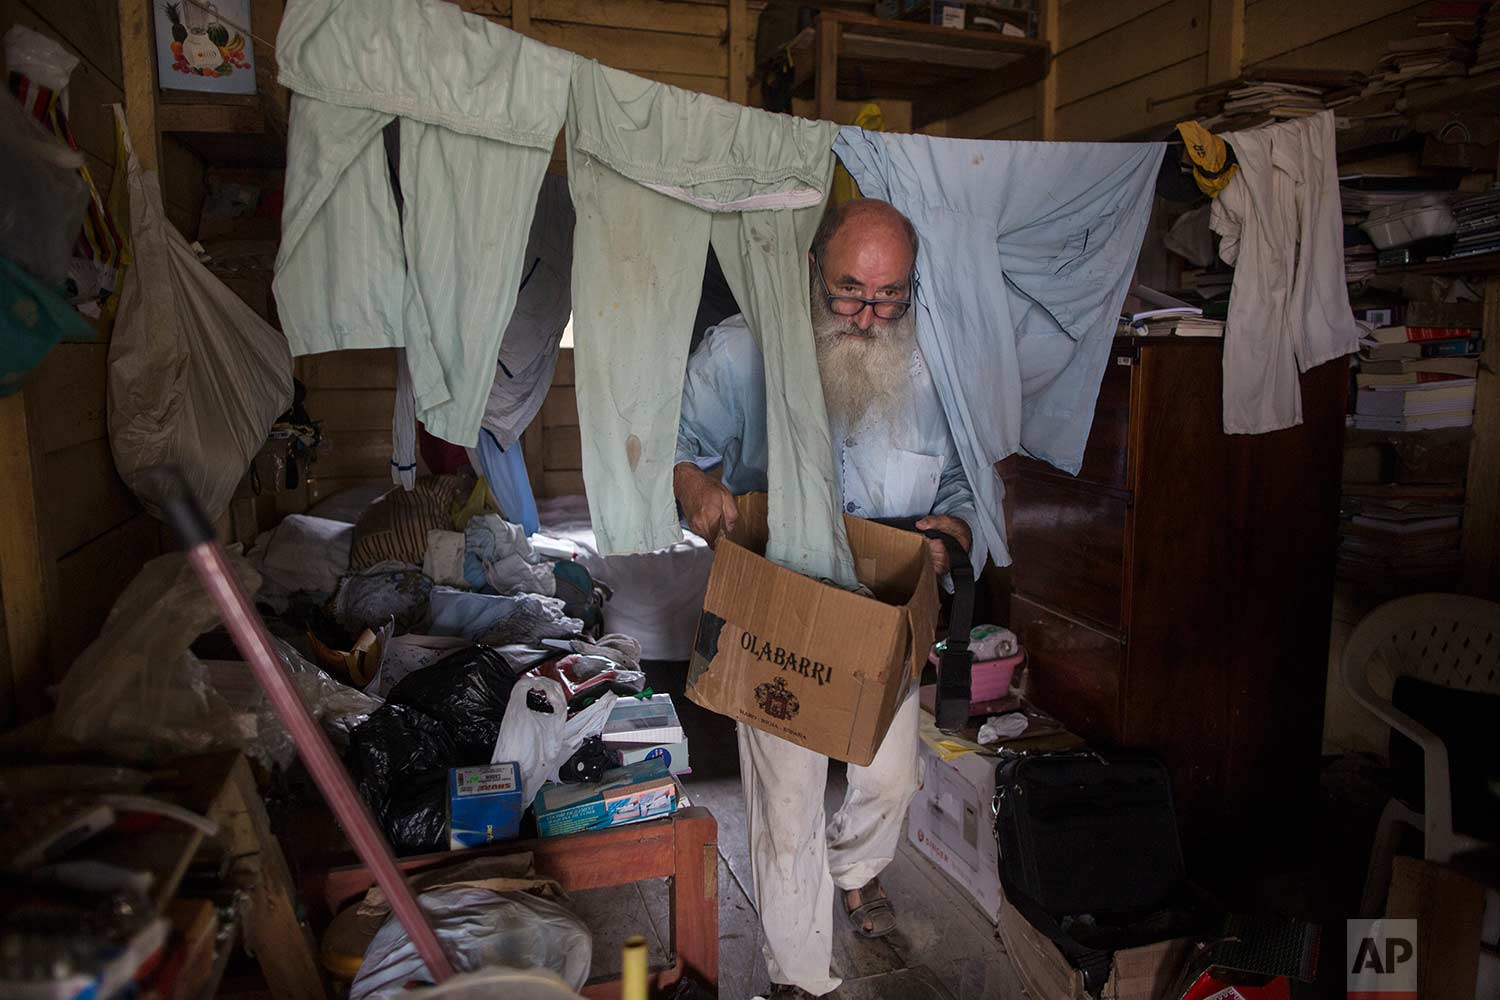 In this Jan. 11, 2018 photo, Father Pablo Zabala, better known as Padre Pablo, cleans up the sleeping quarters where he resides in Boca Colorado, part of Peru's Madre de Dios region in the Amazon. The 70-year-old Spanish priest first traveled to the Amazon in 1978 when, as a young biologist, he collected butterflies and condors for his university's museum in Spain. (AP Photo/Rodrigo Abd) |  See these photos on AP Images